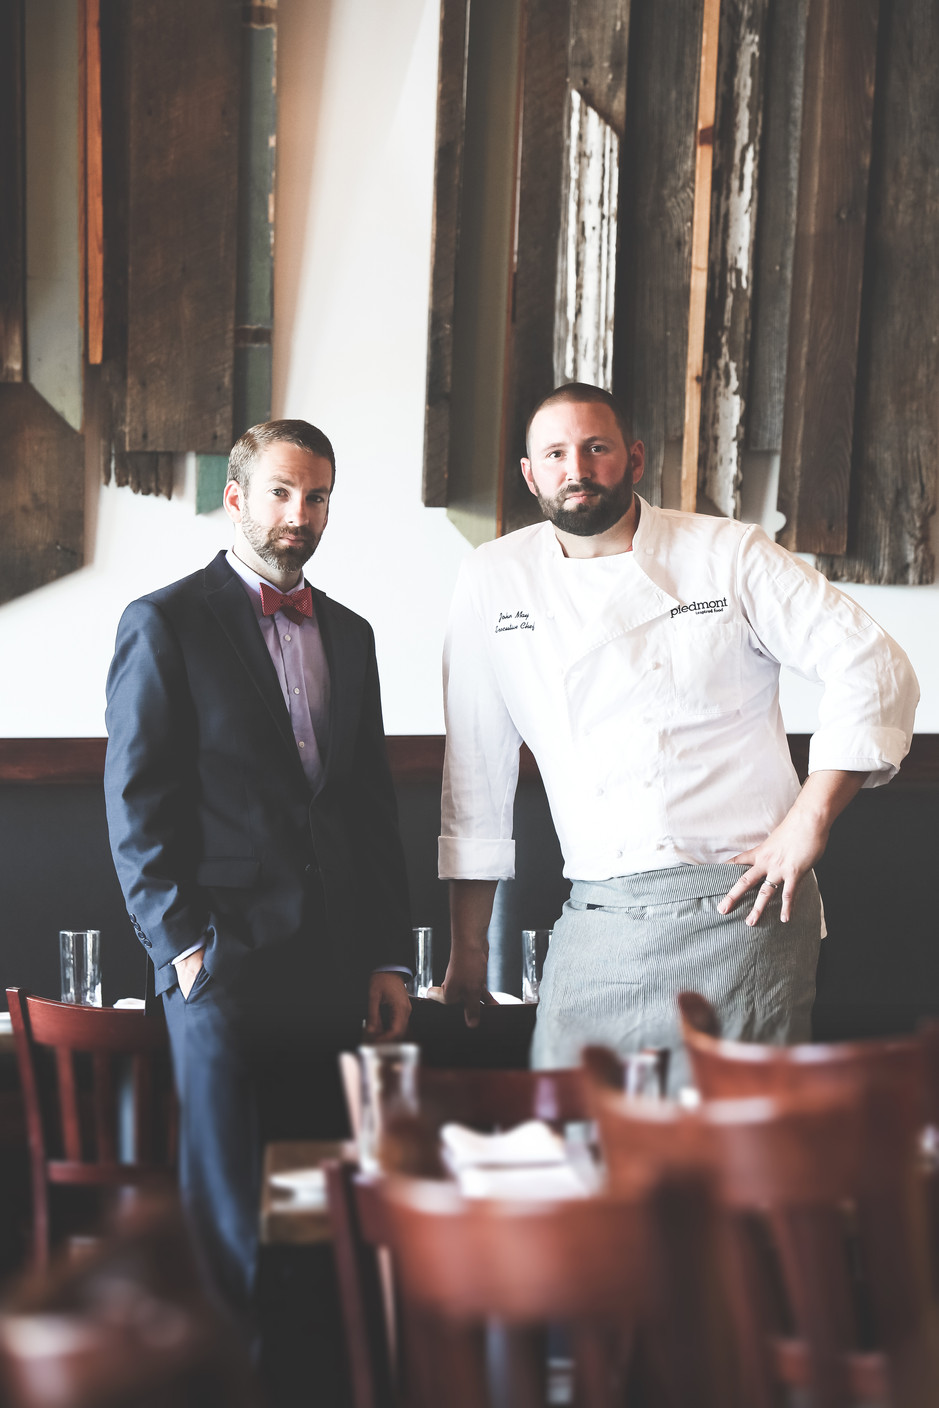 Episode 21 - The Dynamic Duo of Piedmont Restaurant, Chef John May & GM Crawford Leavoy